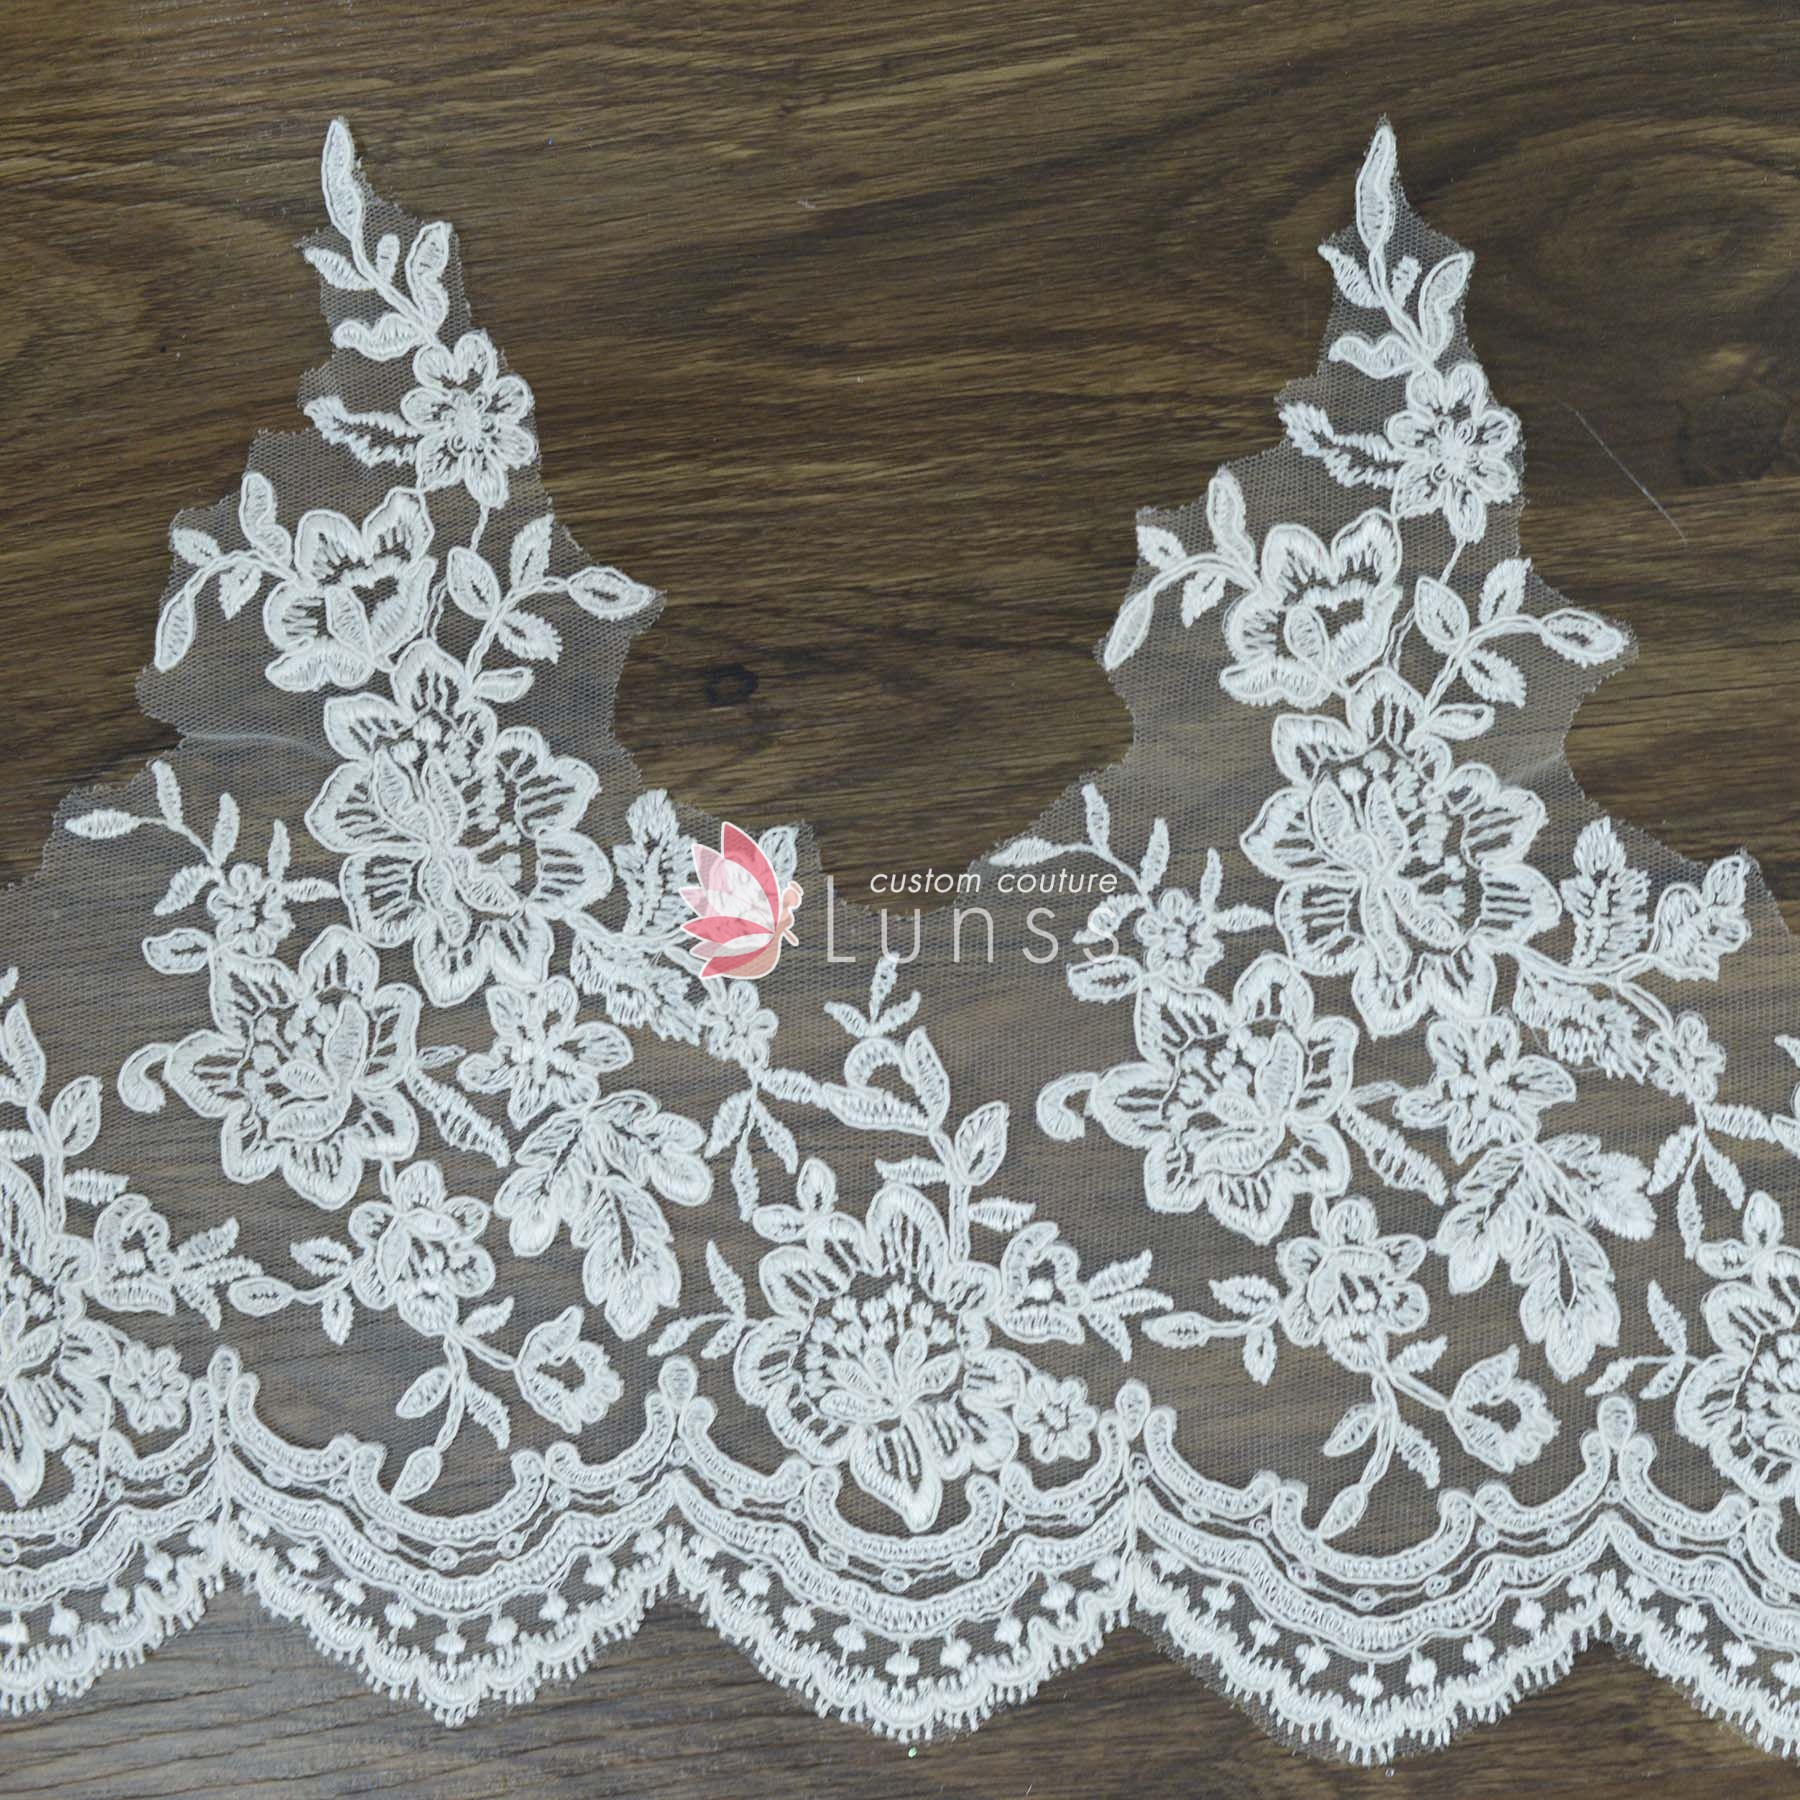 Wedding Dress Embroidery Patterns High Quality Ivory Wide Corded Embroidered Floral Bridal Lace Trim16 Yardspiece